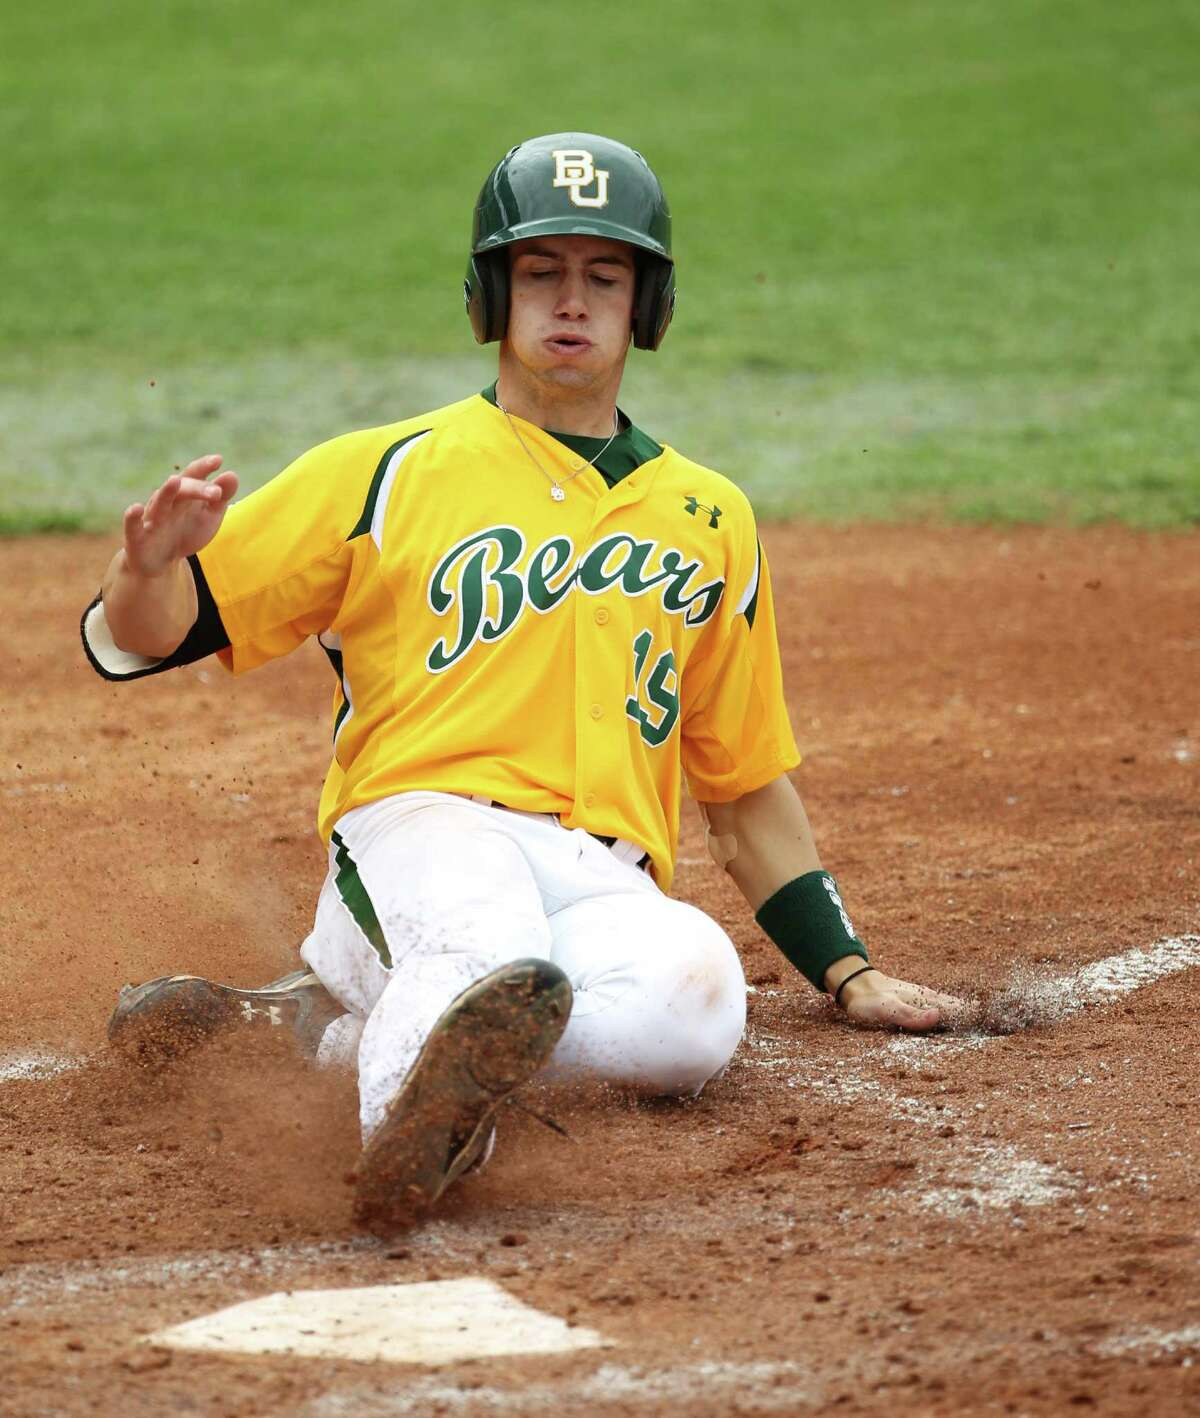 Baylor's Logan Vick slides in 2010. Vick, a Kerrville Tivy graduate and junior at Baylor, was taken in the 11th round (353rd overall) by Cleveland.